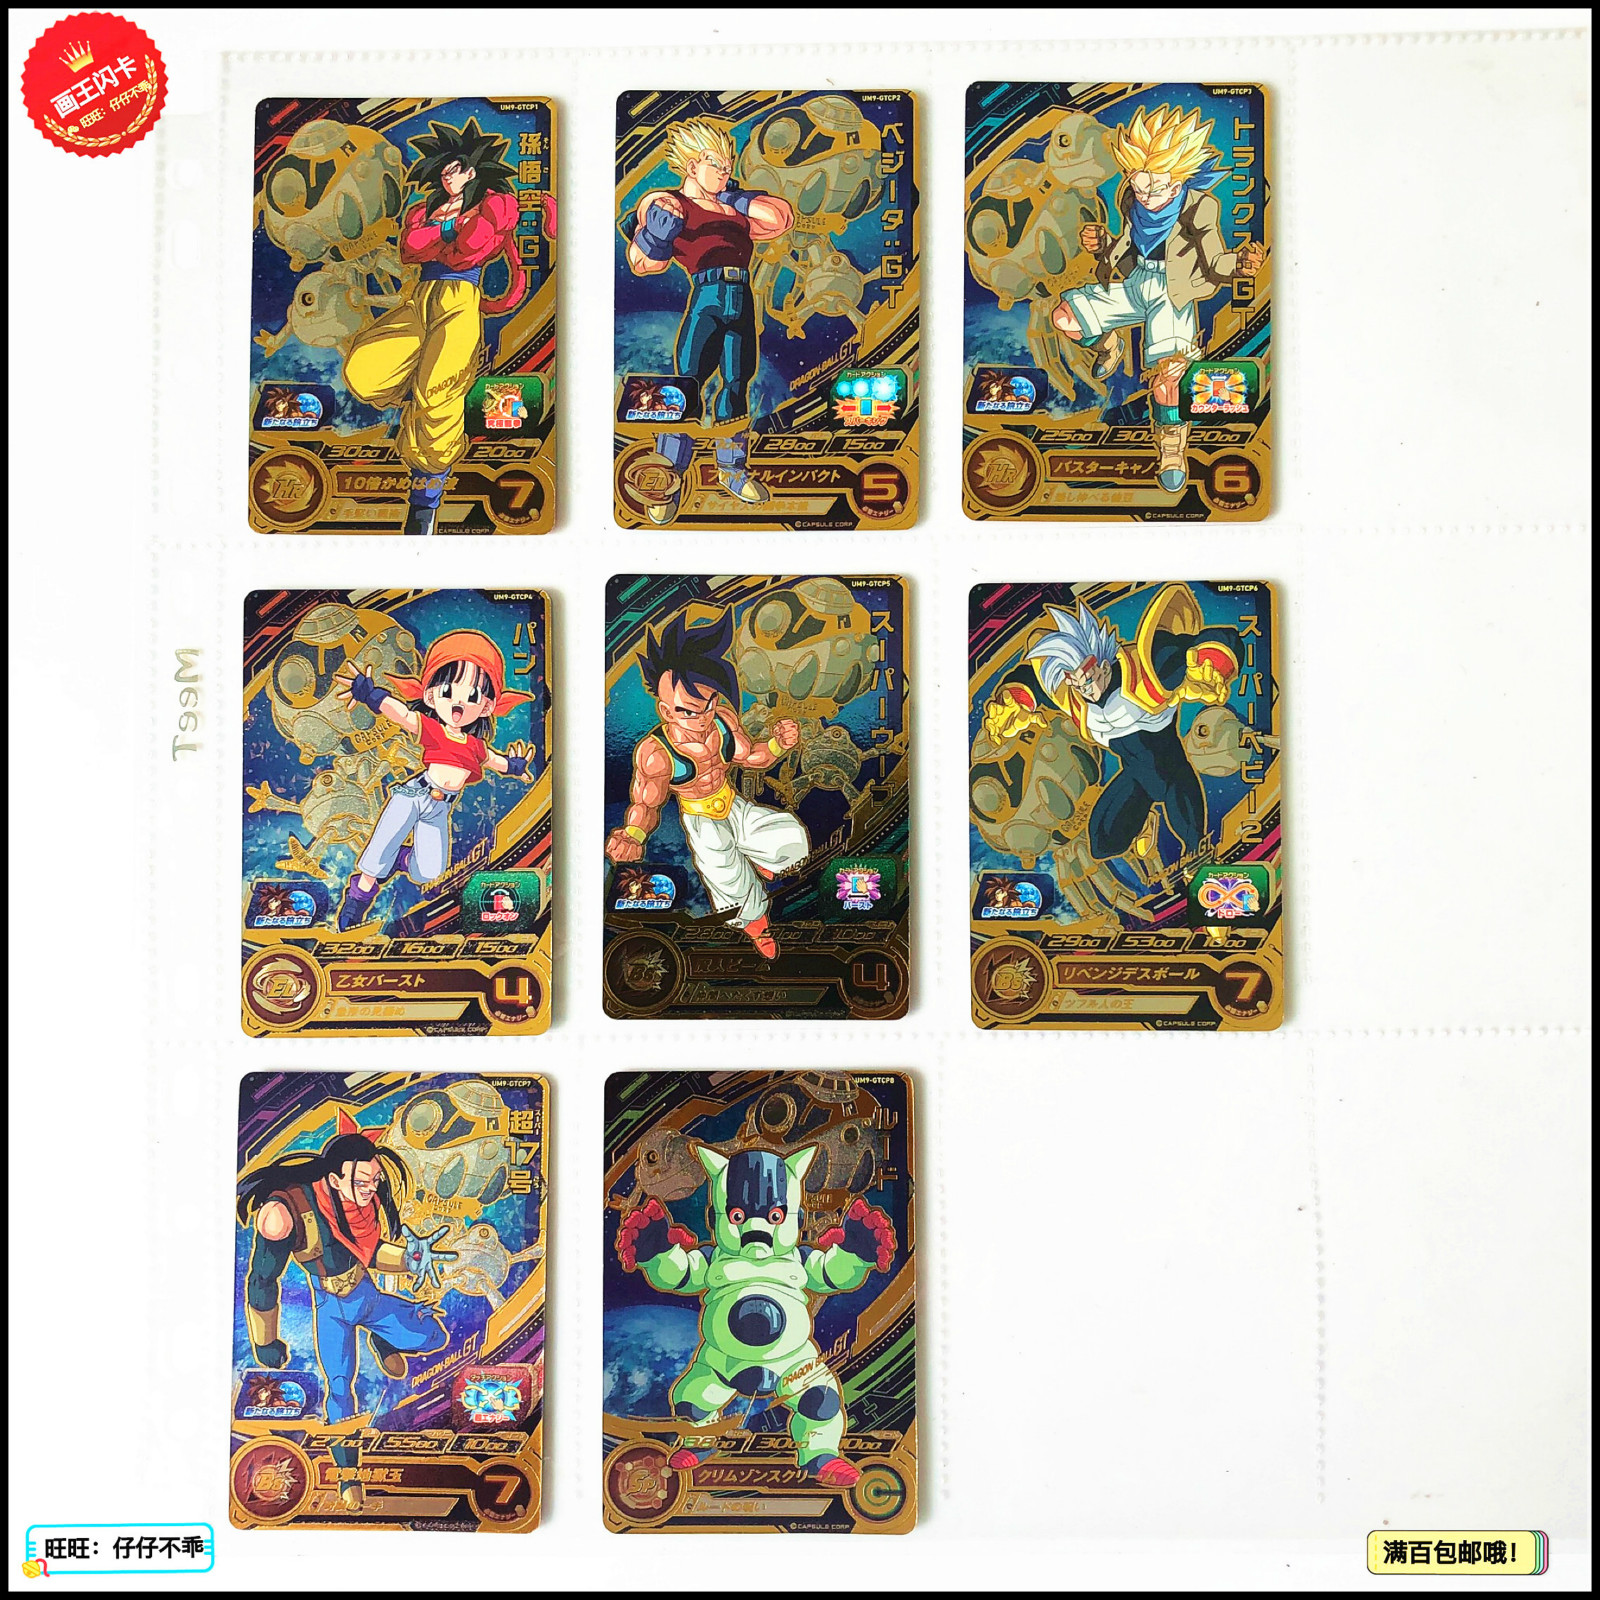 Japan Original Dragon Ball Hero Card UM9 GTCP Goku Toys Hobbies Collectibles Game Collection Anime Cards